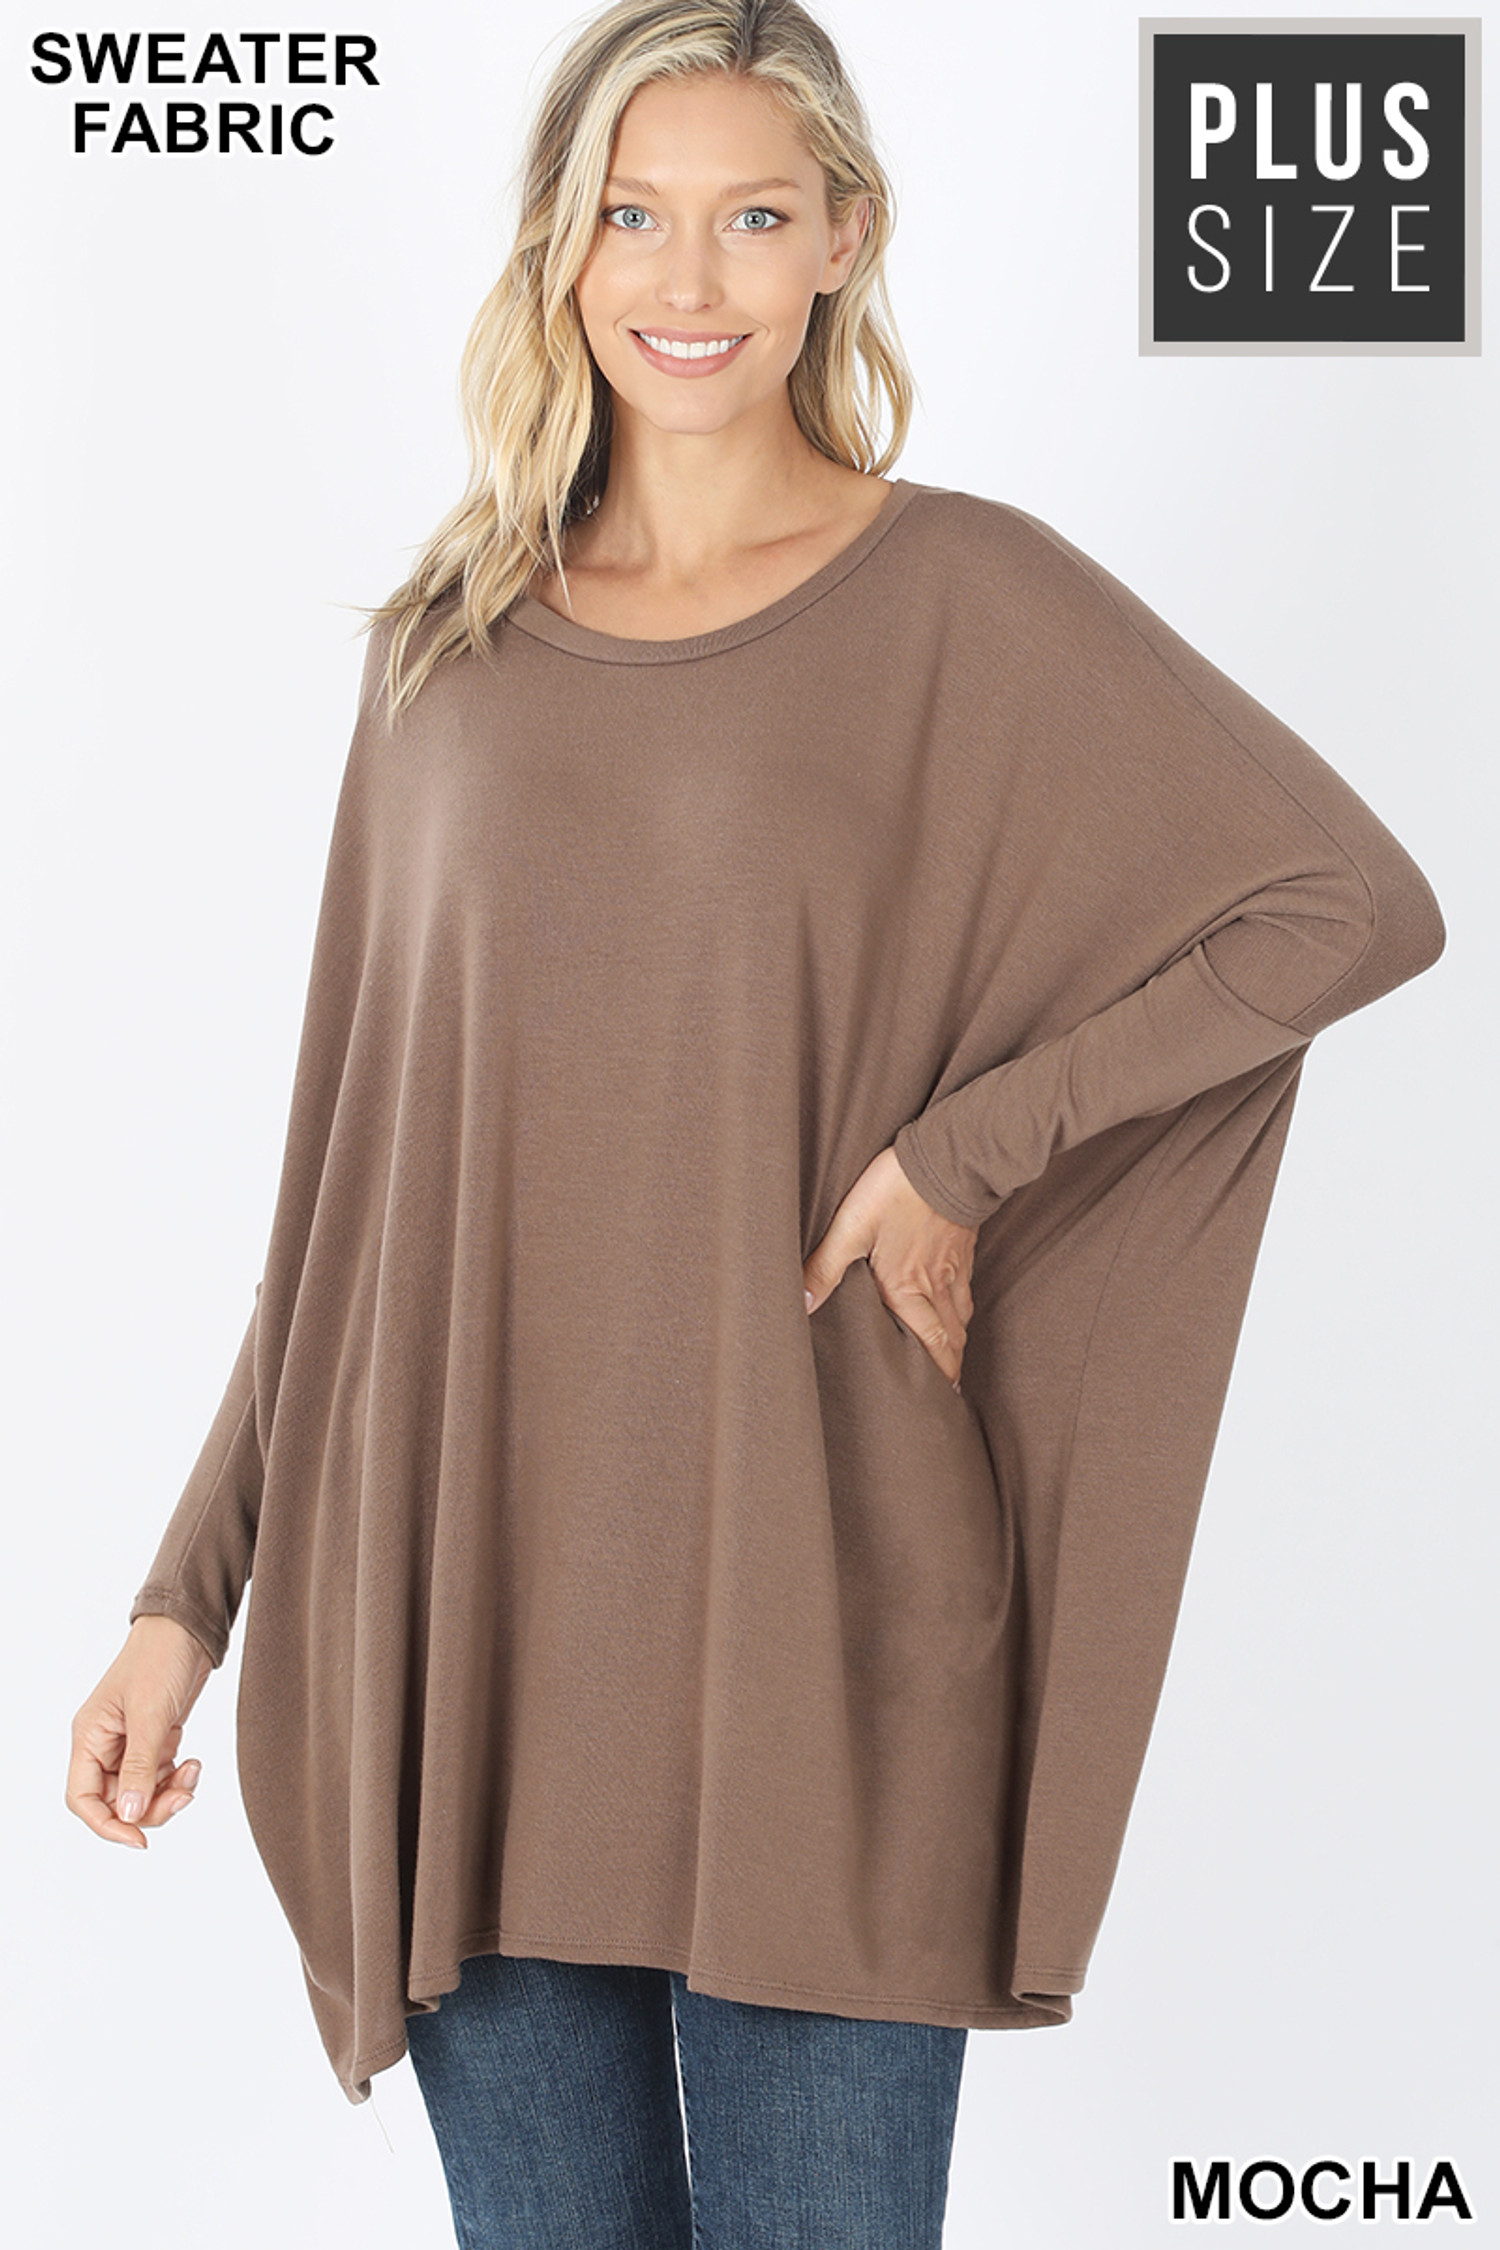 Front view of Mocha Oversized Round Neck Poncho Plus Size Sweater